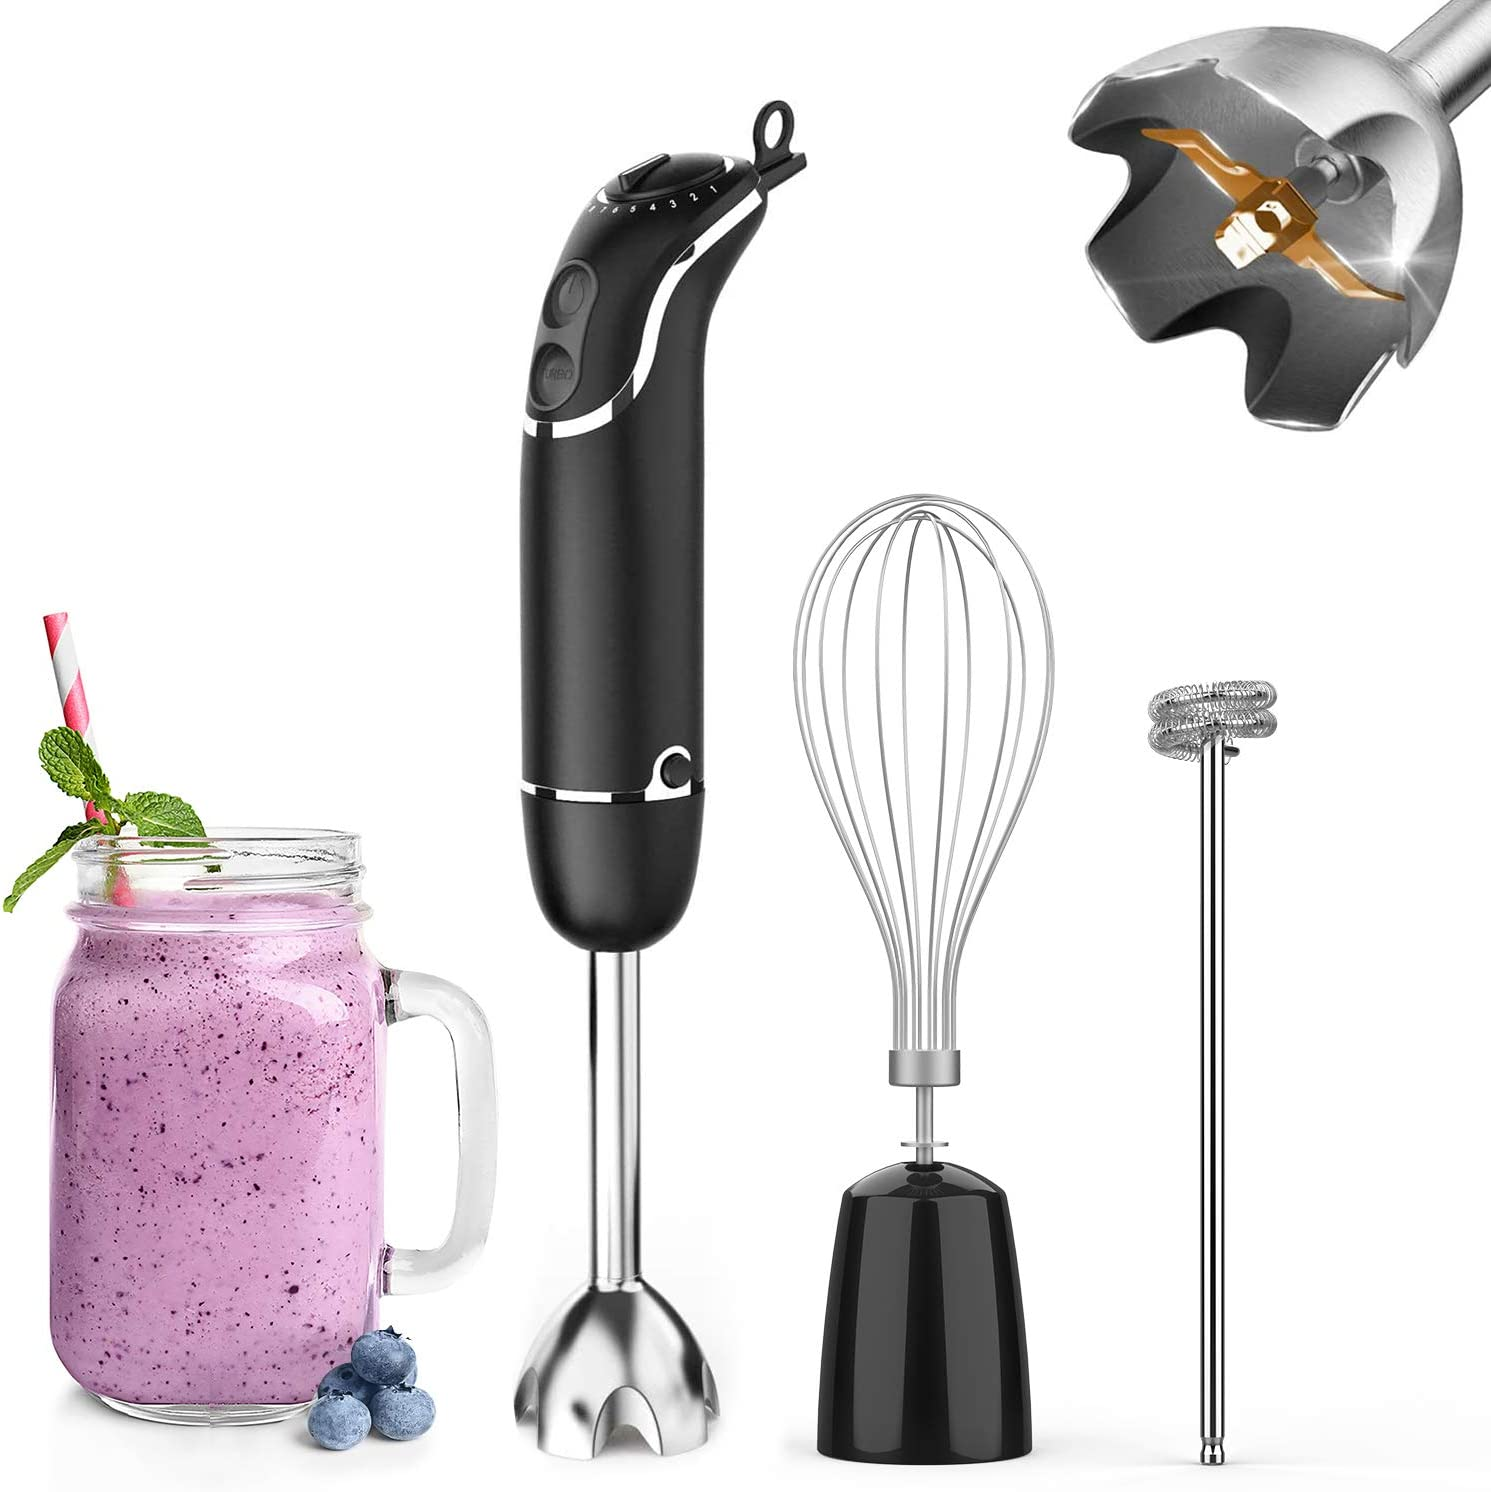 KOIOS 800-Watt/ 12-Speed Immersion Hand Blender(Titanium Reinforced), Turbo for Finer Results, 3-in-1 Set Includes BPA-Free Food Chopper / Egg Beater /Milk Frother Ergonomic Grip, Detachable: Kitchen & Dining